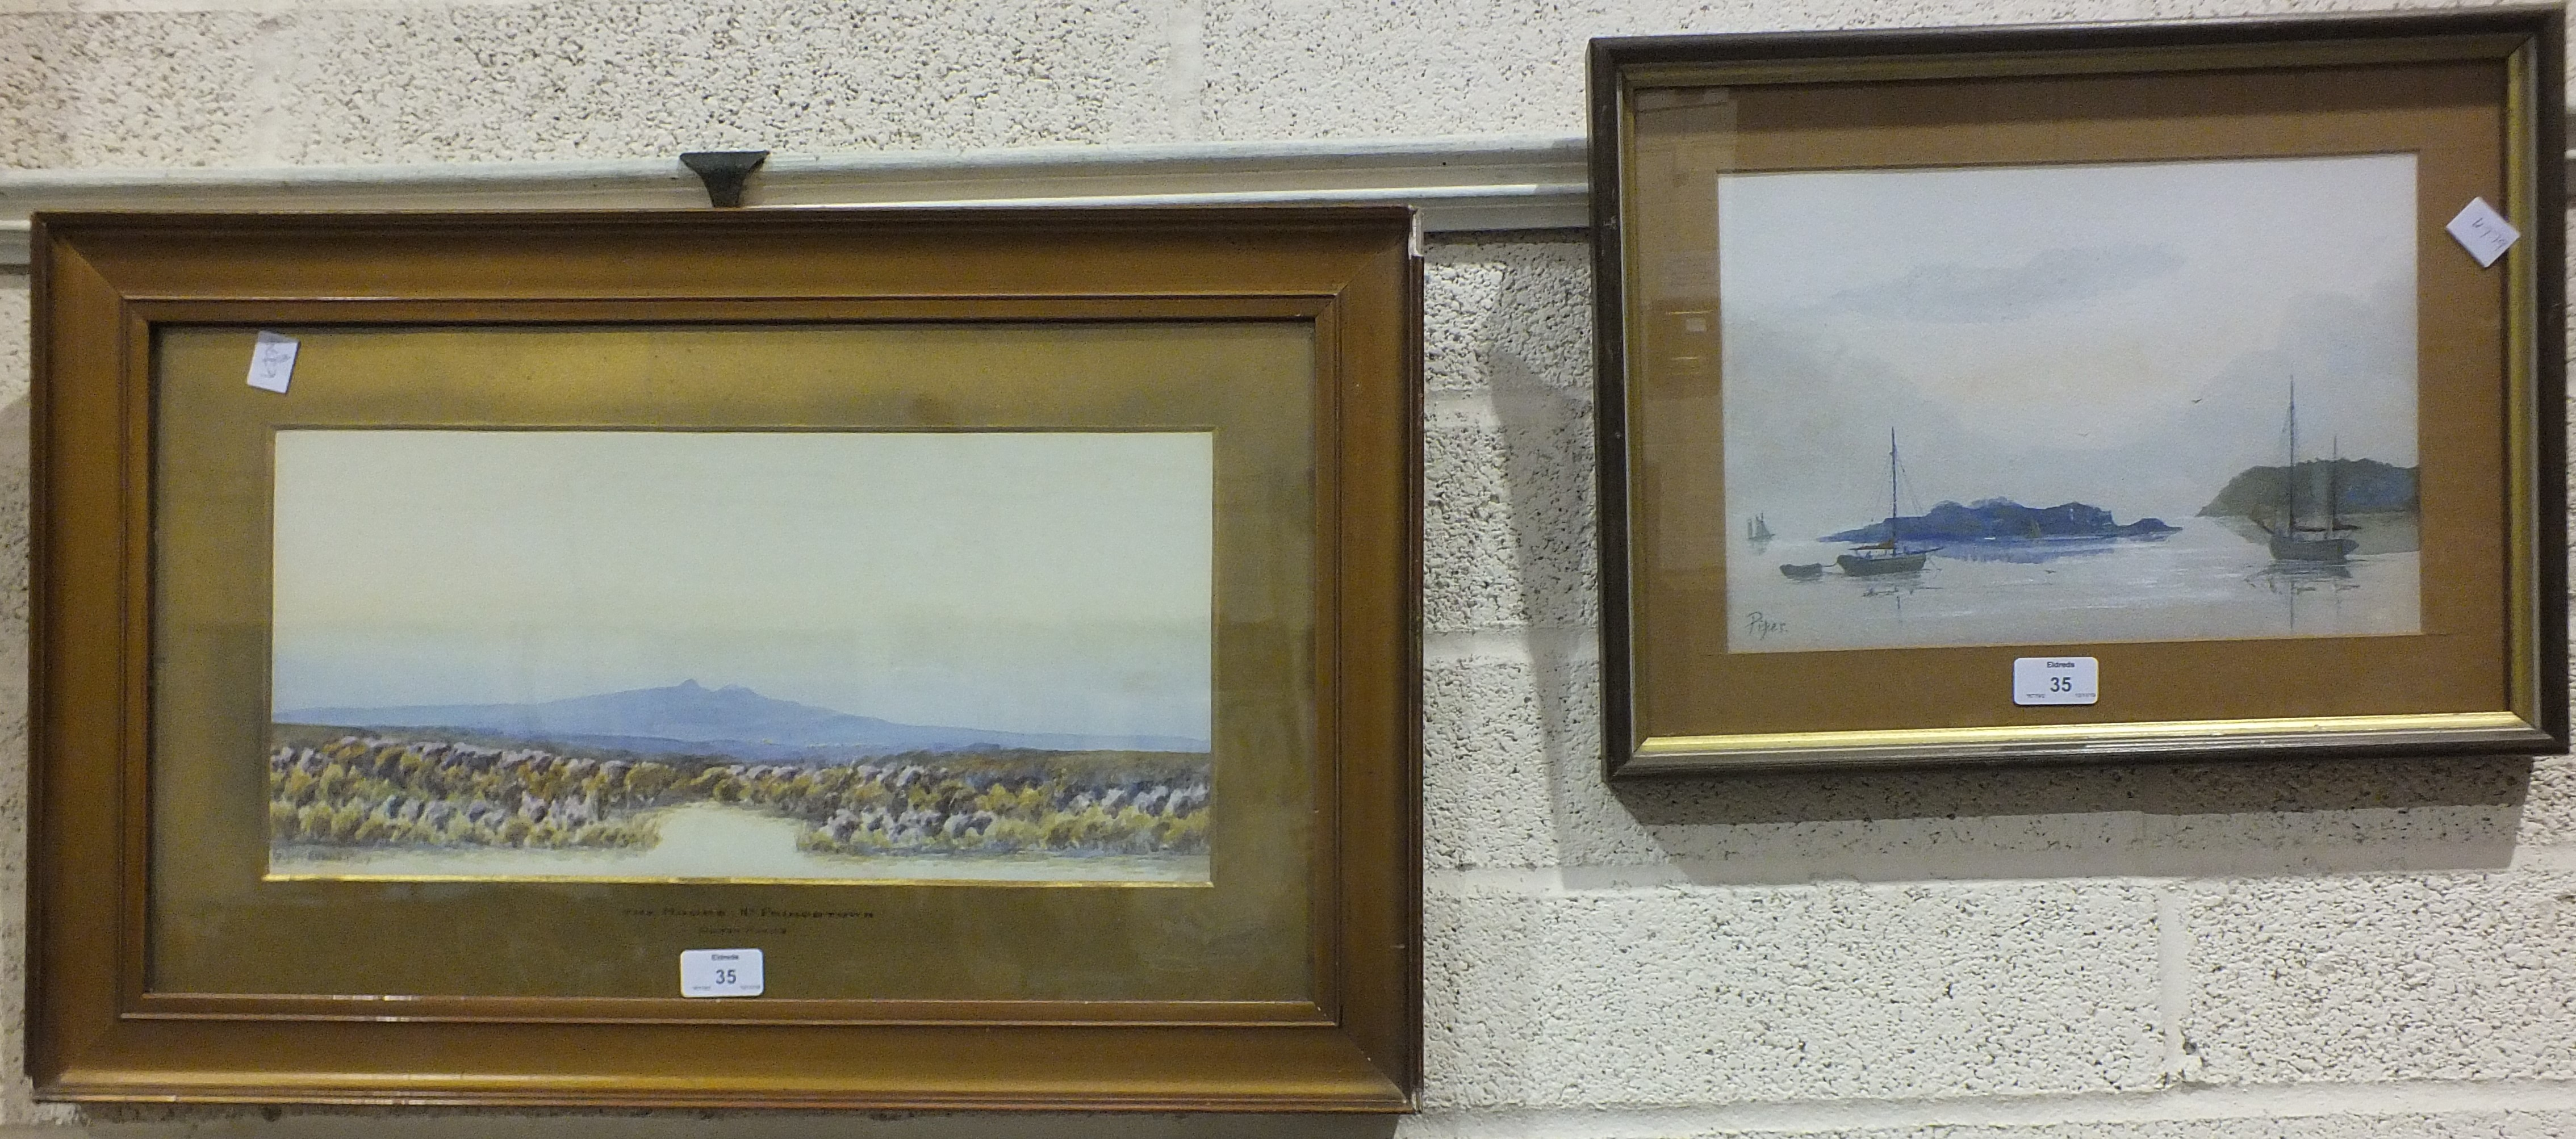 Lot 35 - Colton Robbins, 'The Moor near Princetown', watercolour, signed and dated 1907, titled on the mount,